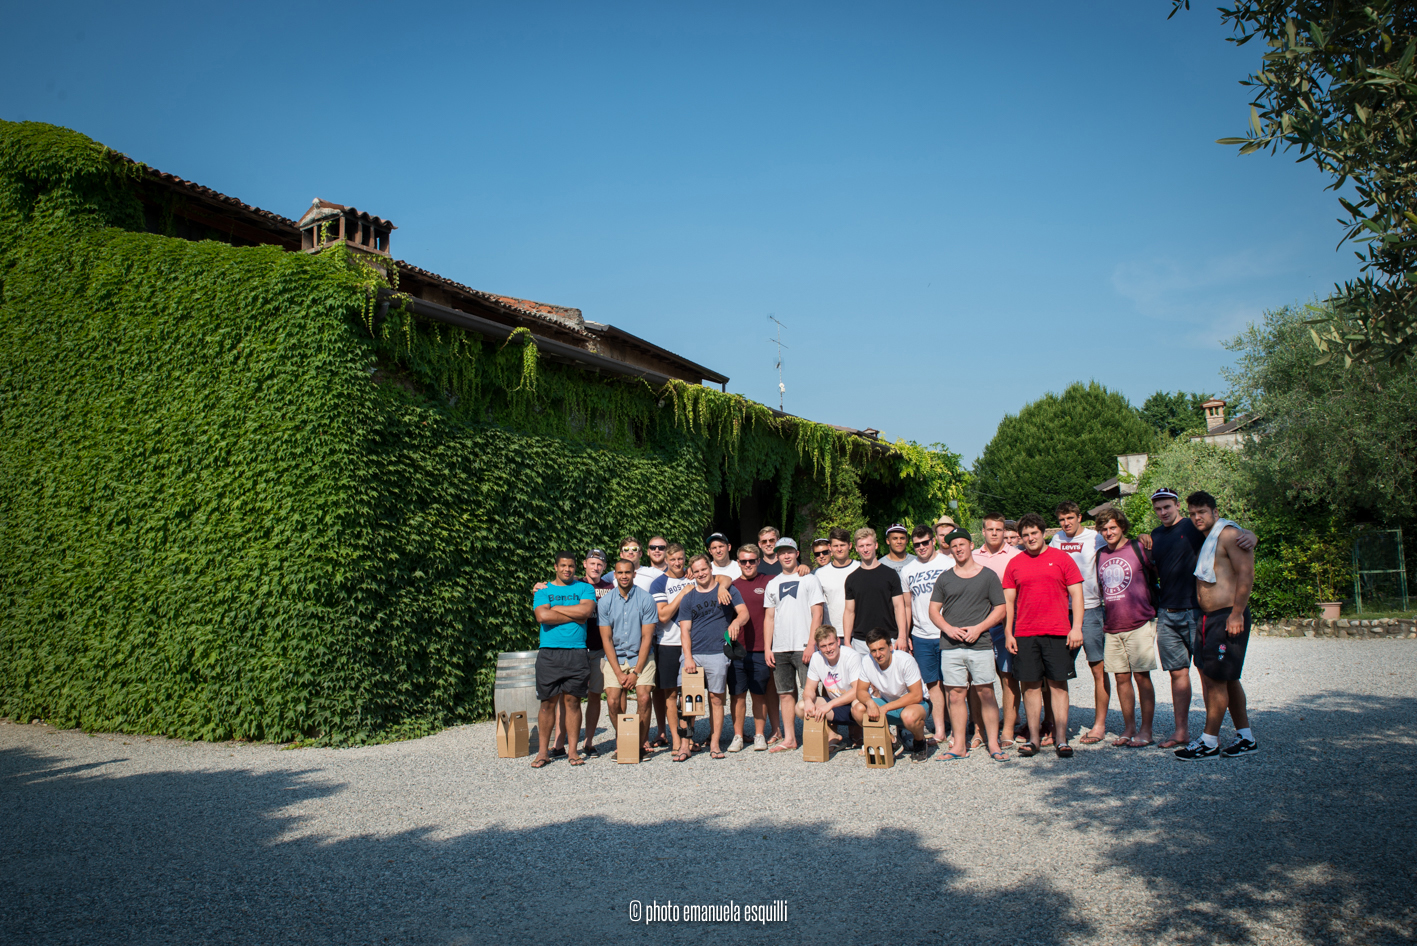 Rugby England under 21 at Selva Capuzza_1.jpg